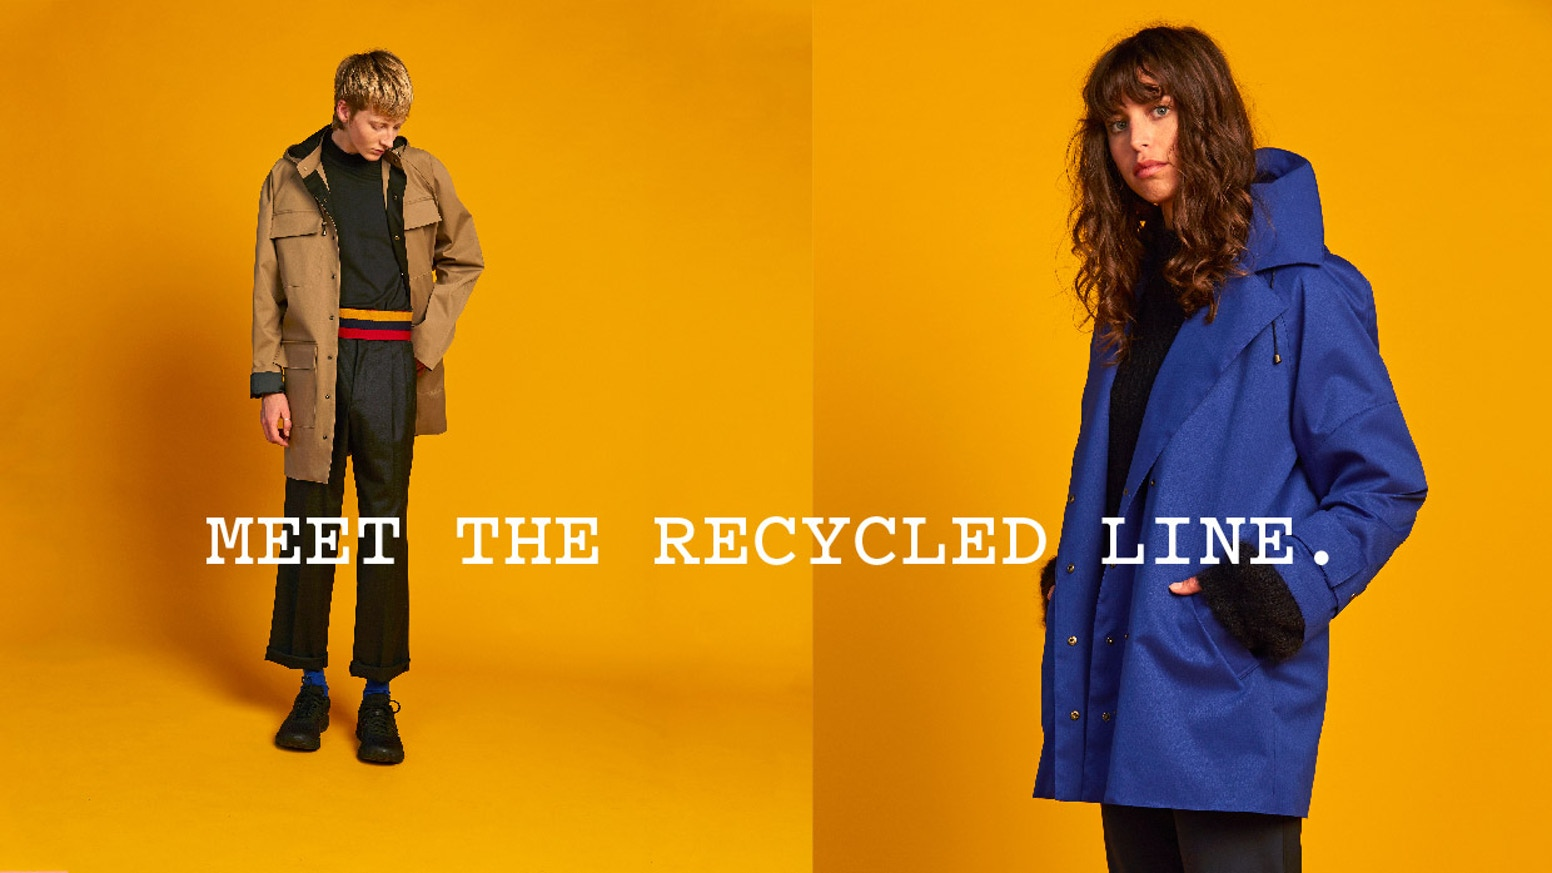 Waterproof, seam-sealed raincoats from Wellington, New Zealand that intercept plastic bottles from the waste stream.